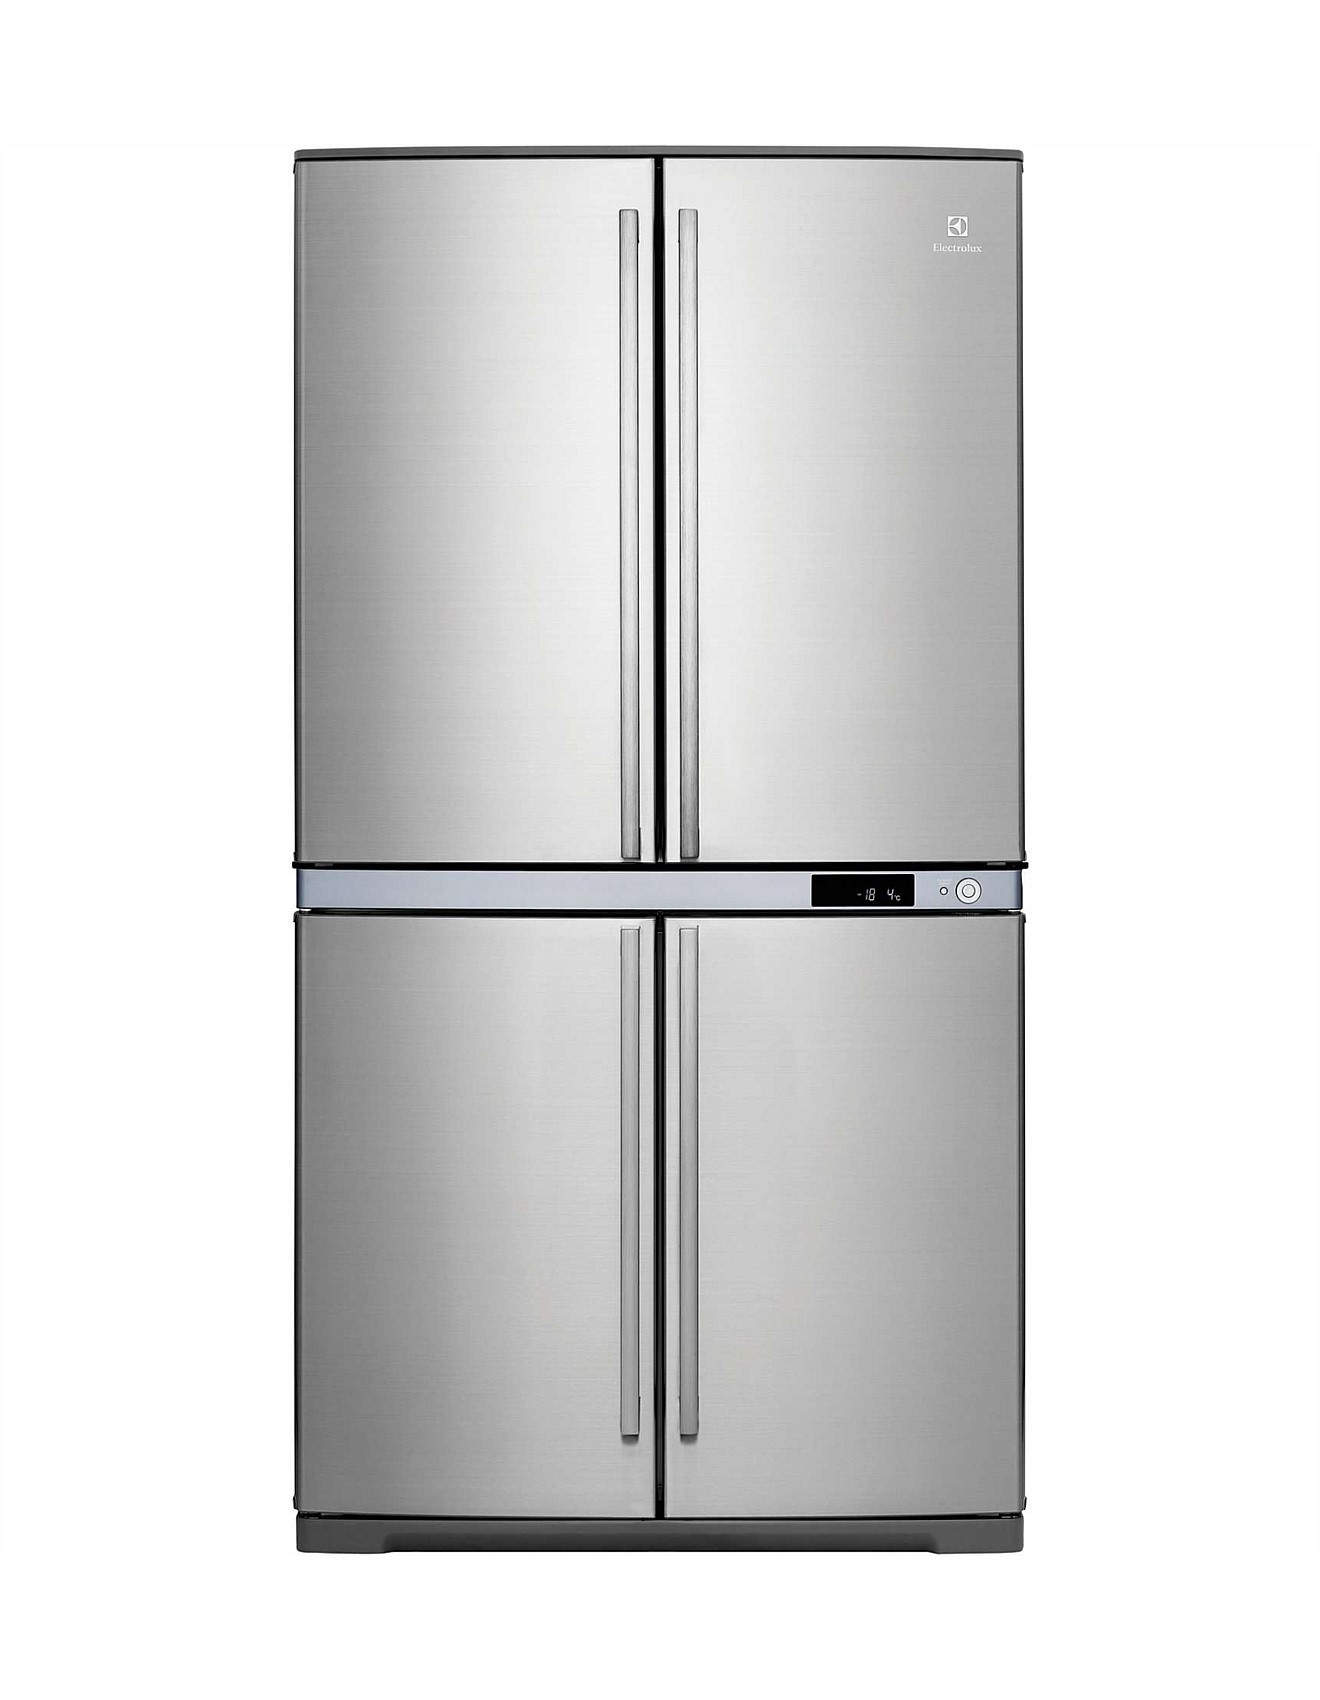 Electrolux Refrigerators Review | Models, Features, Prices ...